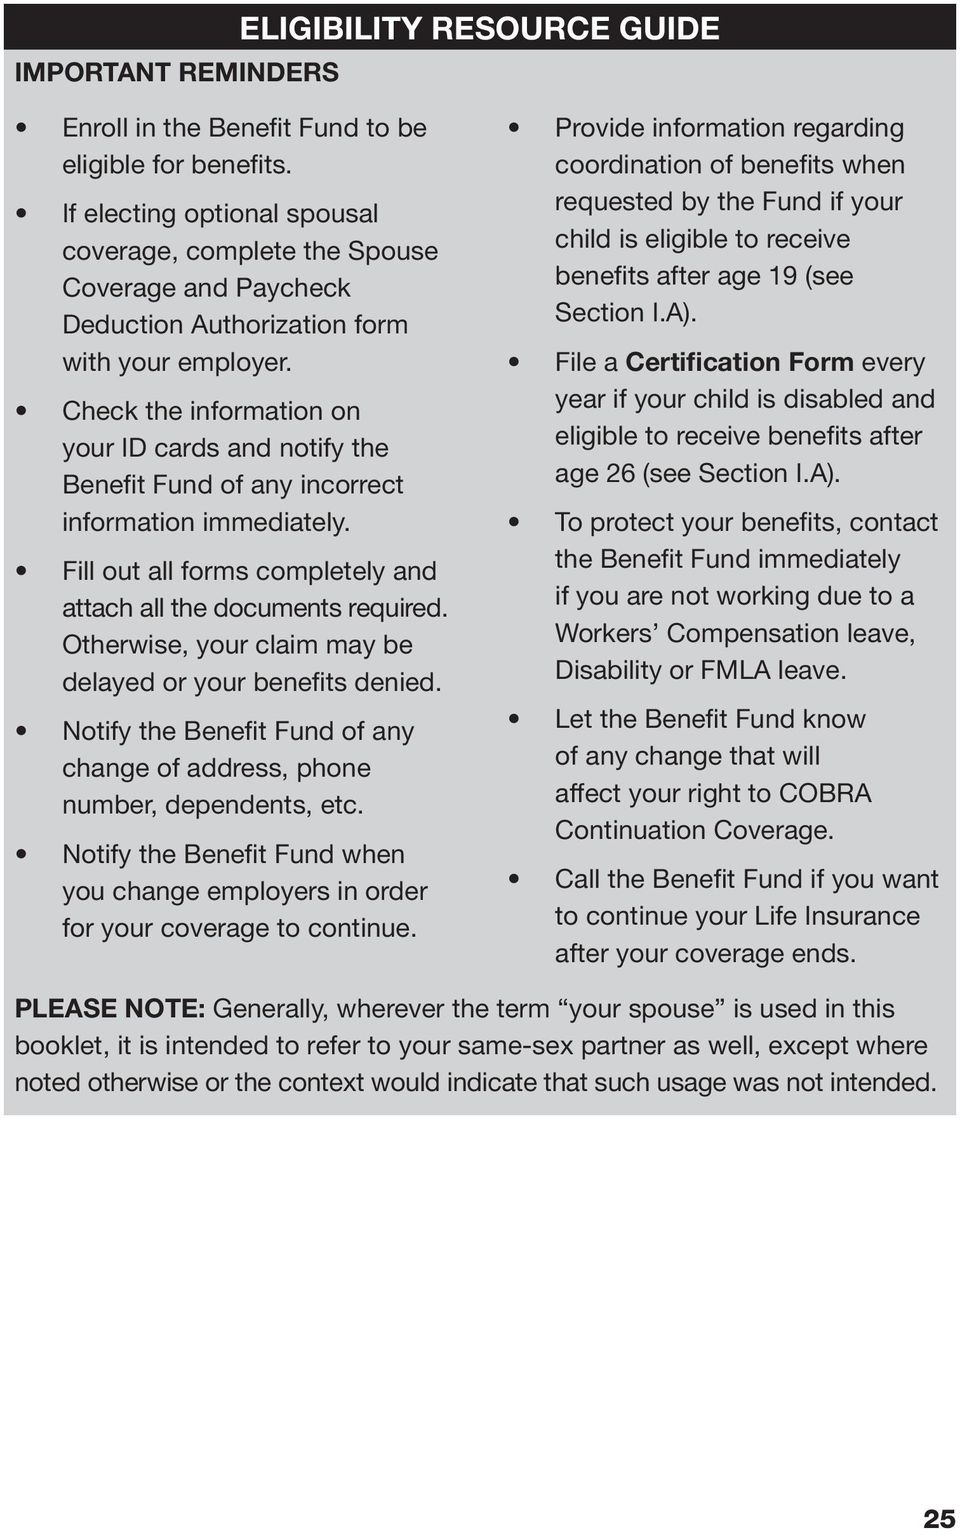 Check the information on your ID cards and notify the Benefit Fund of any incorrect information immediately. Fill out all forms completely and attach all the documents required.